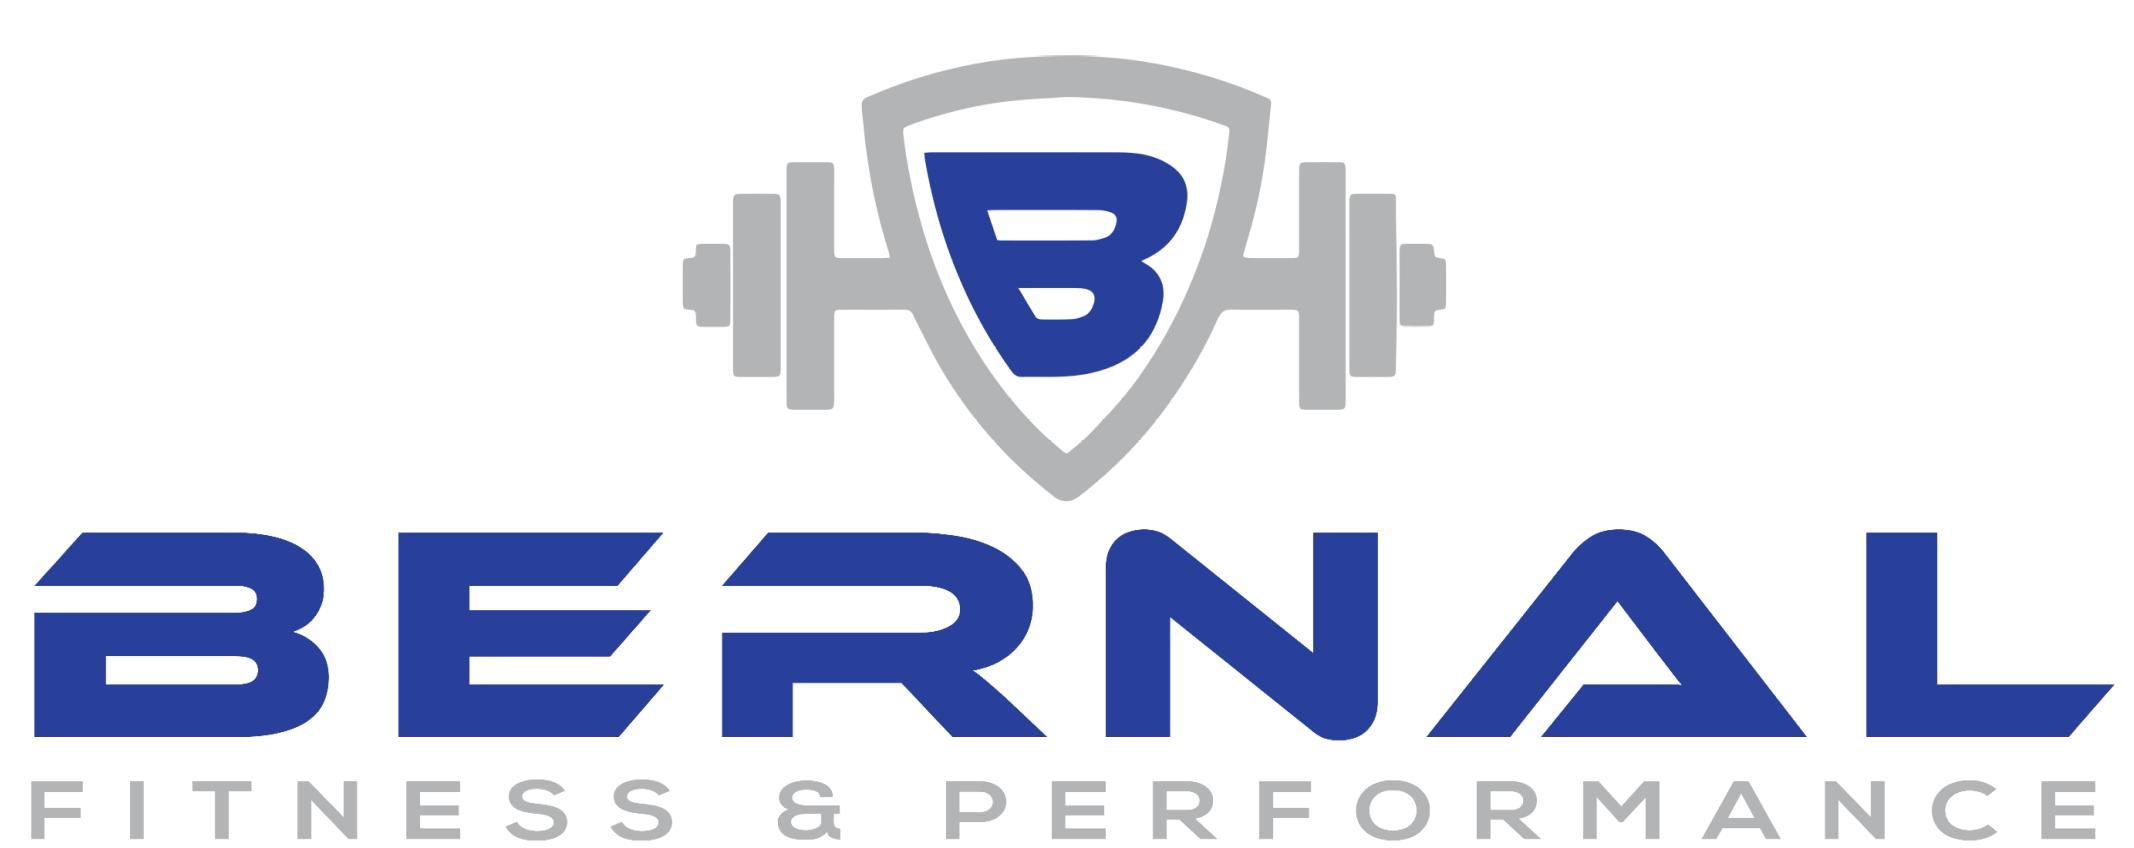 Bernal Fitness & Performance